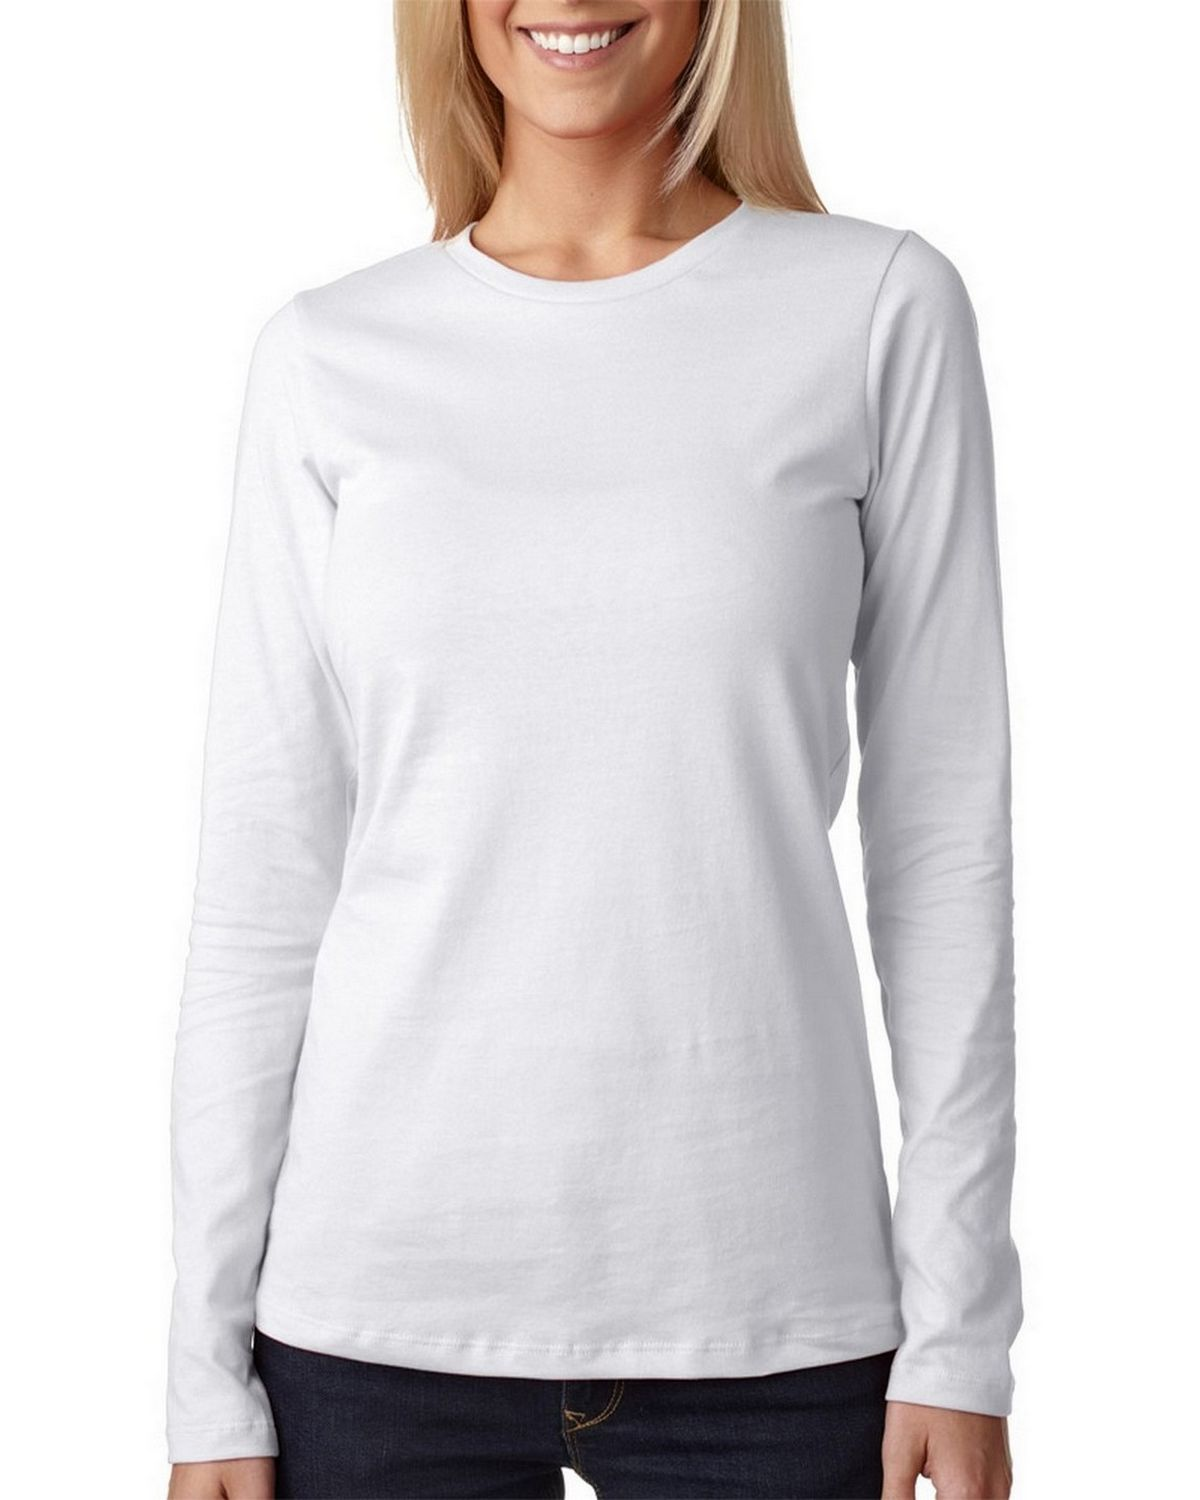 Bella + Canvas 6450 Ladies Relaxed Jersey Tee - White - XL 6450